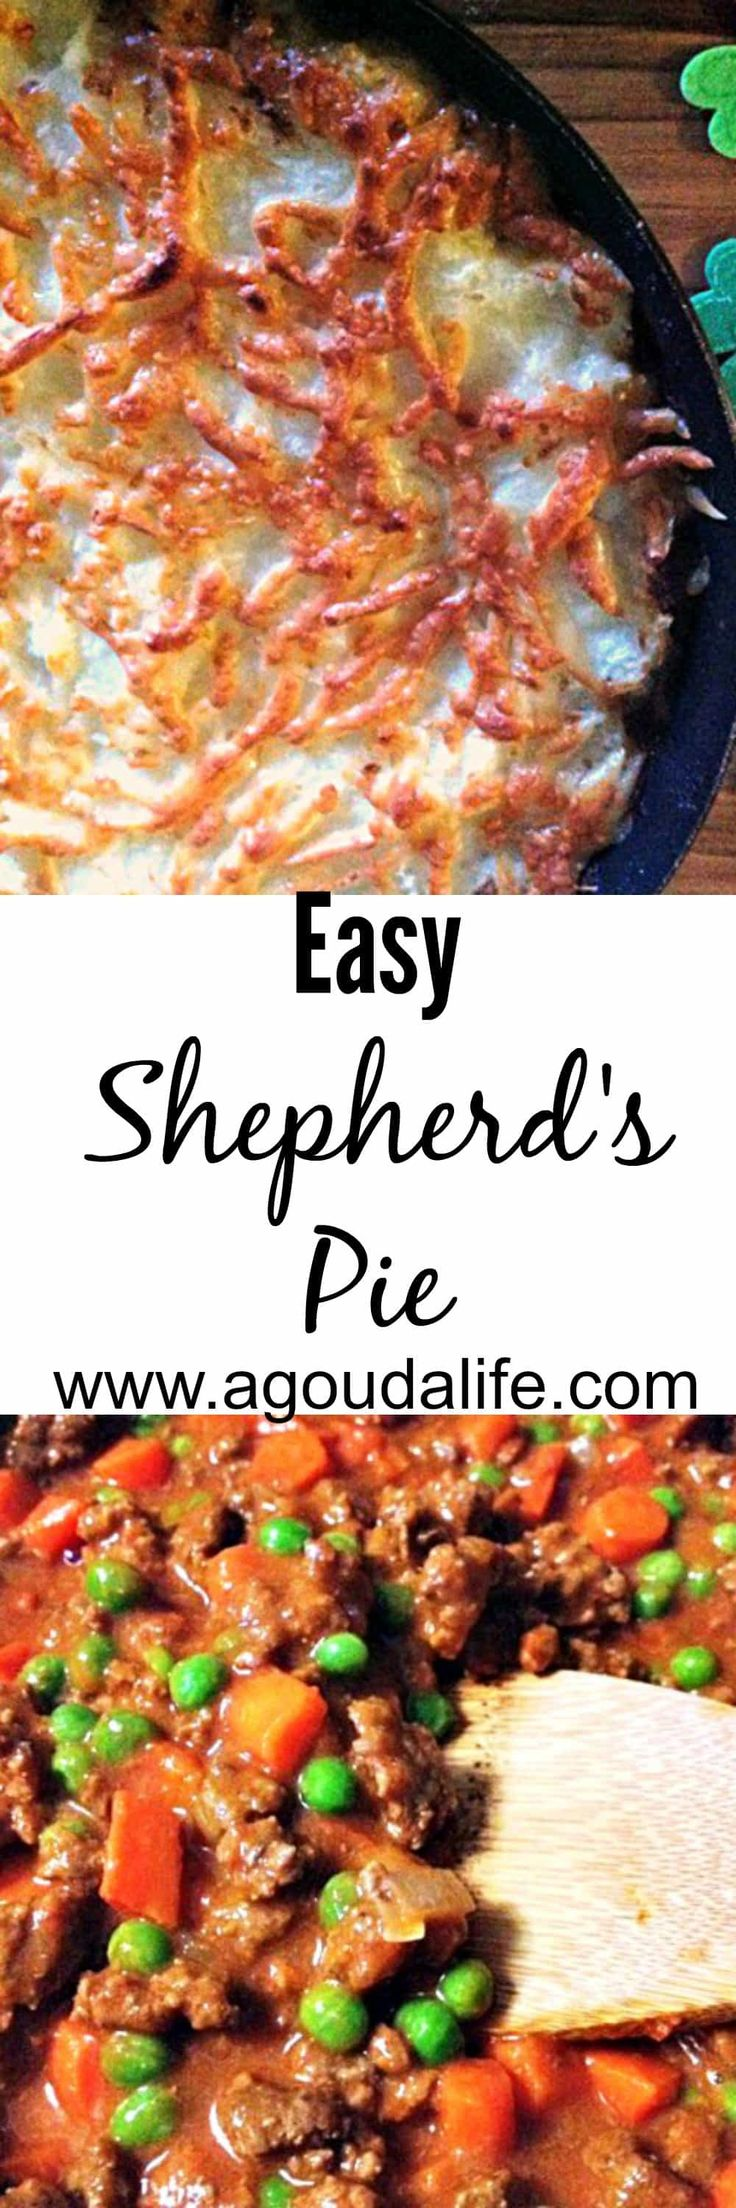 Easy Shepherd's Pie - a great one-pot meal - beef and vegetables in a tasty sauce topped with mashed potatoes and Gruyere cheese.